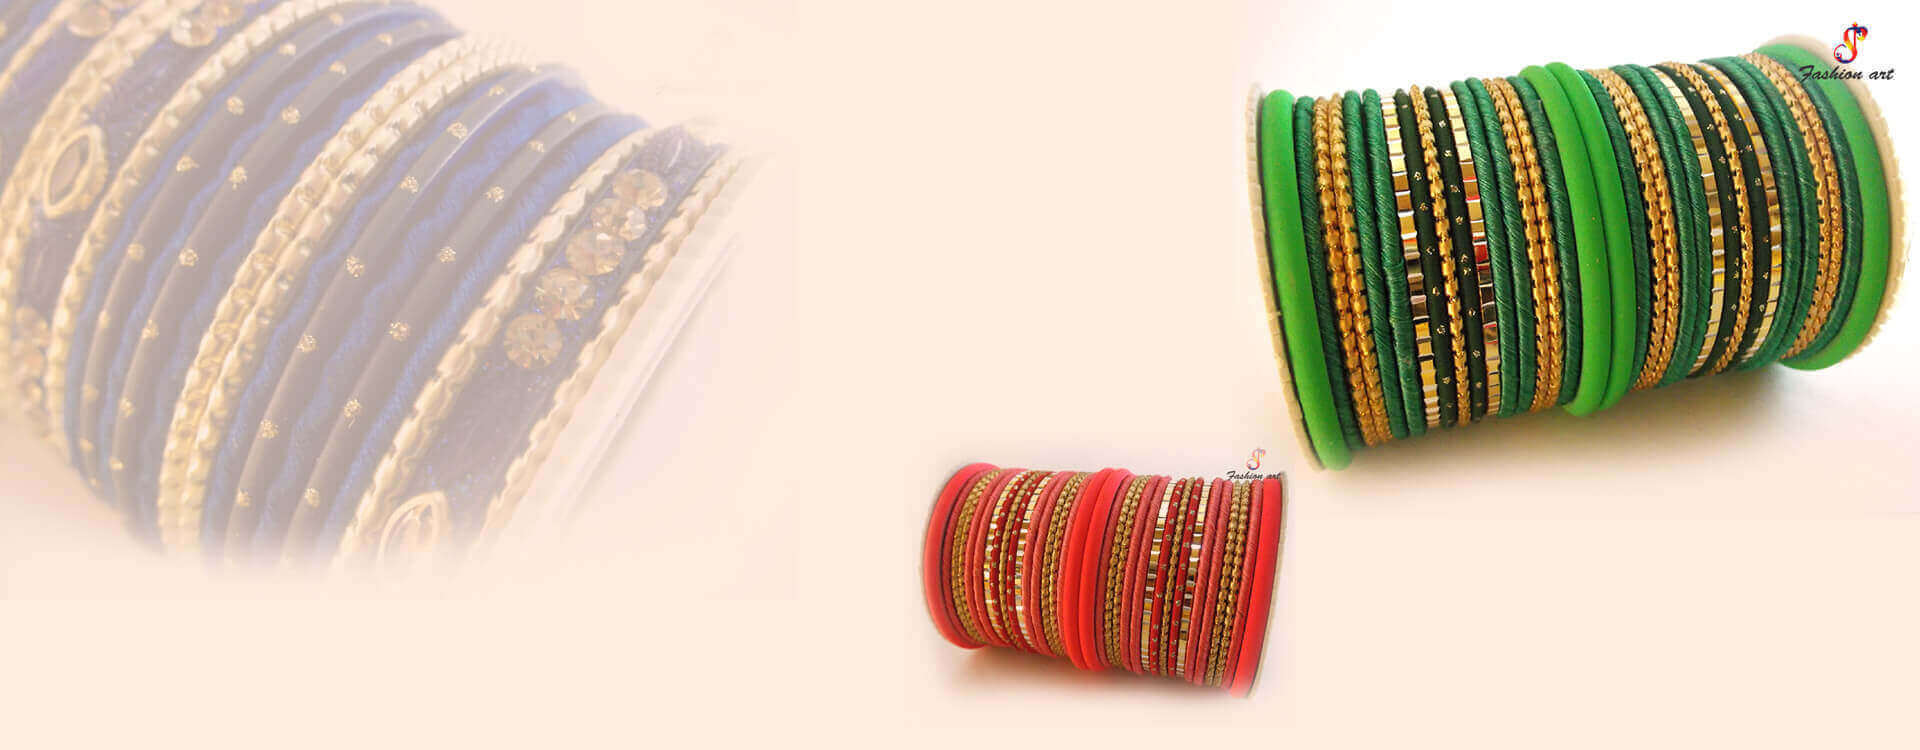 An exquisite collection of designer bangles